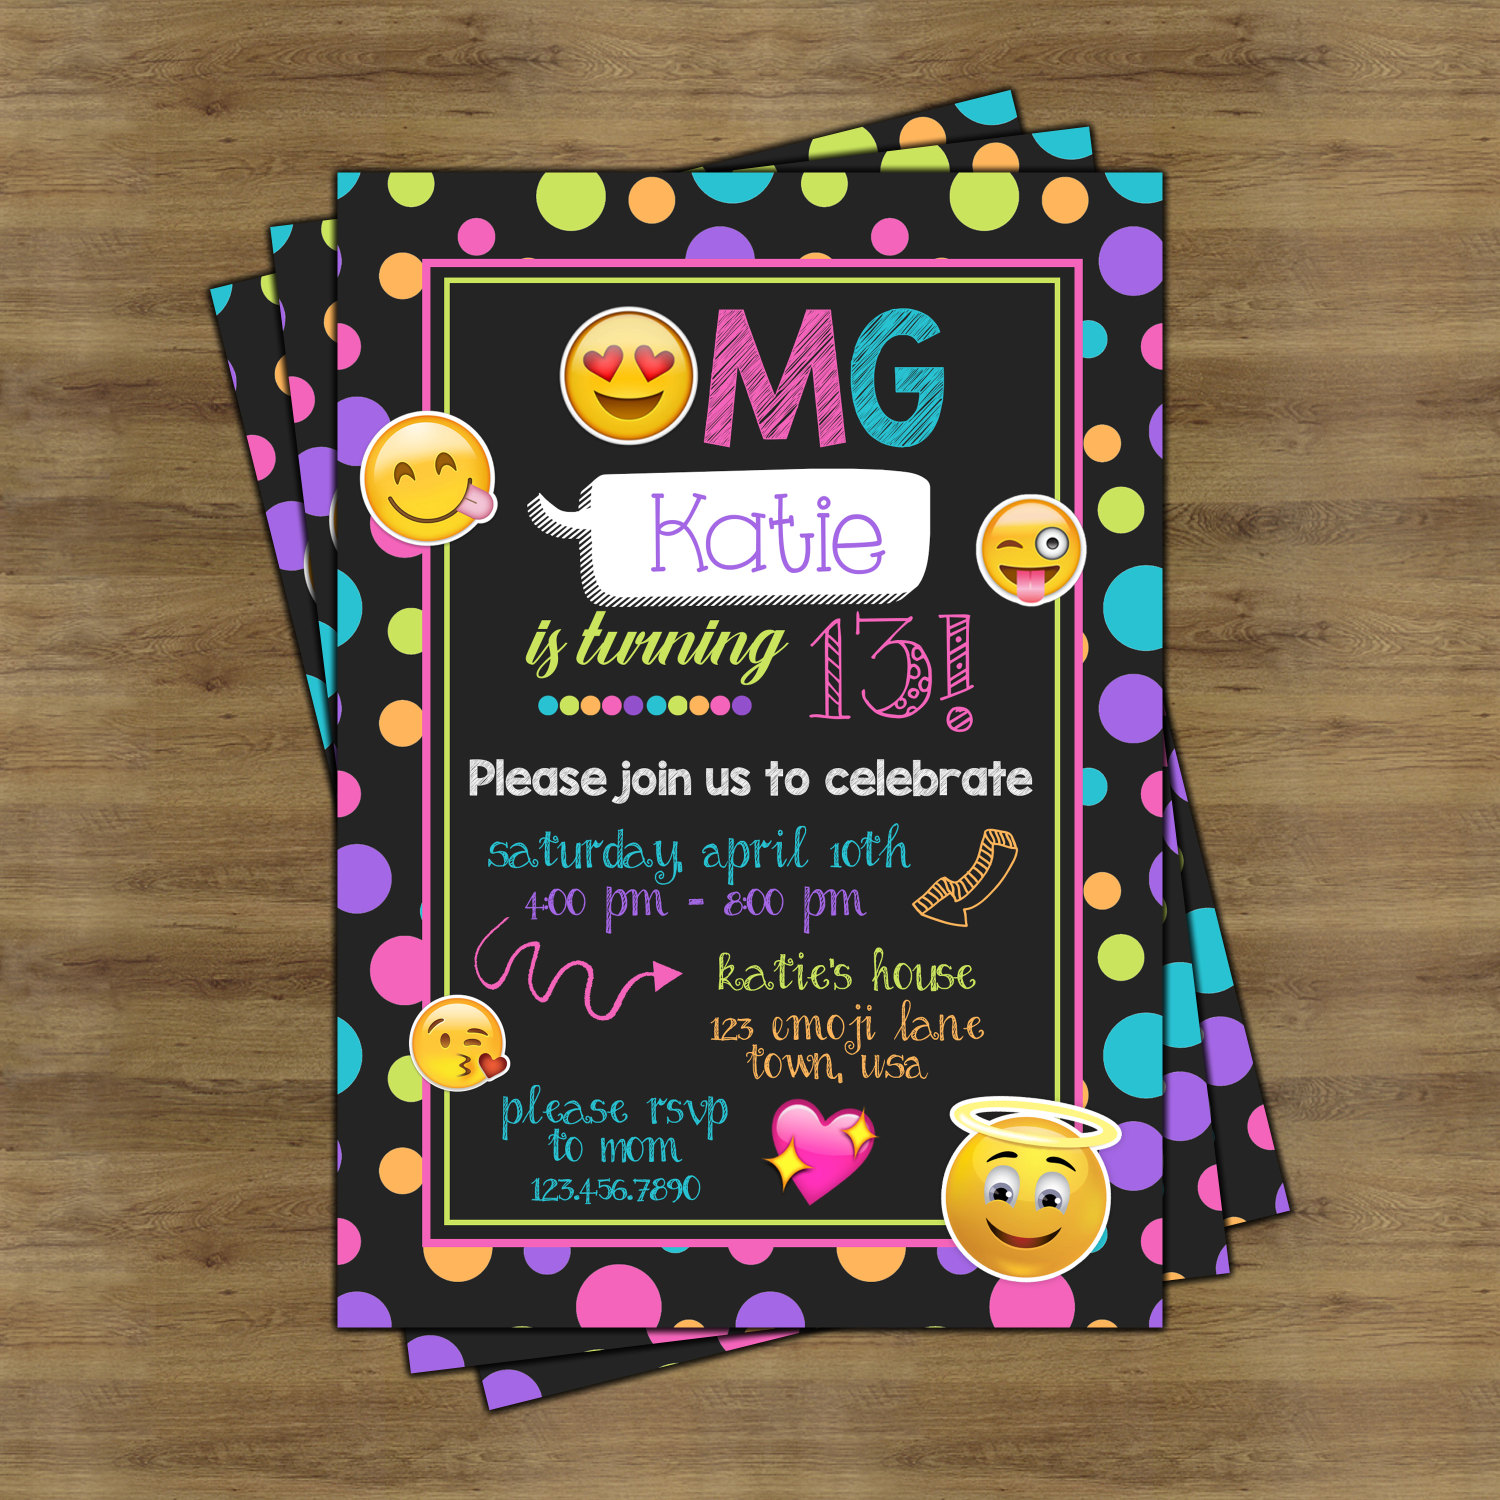 It Will Surely Excite All The Guests And Birthday Person To Fullest Invitations Would Build Up Emoji Themed